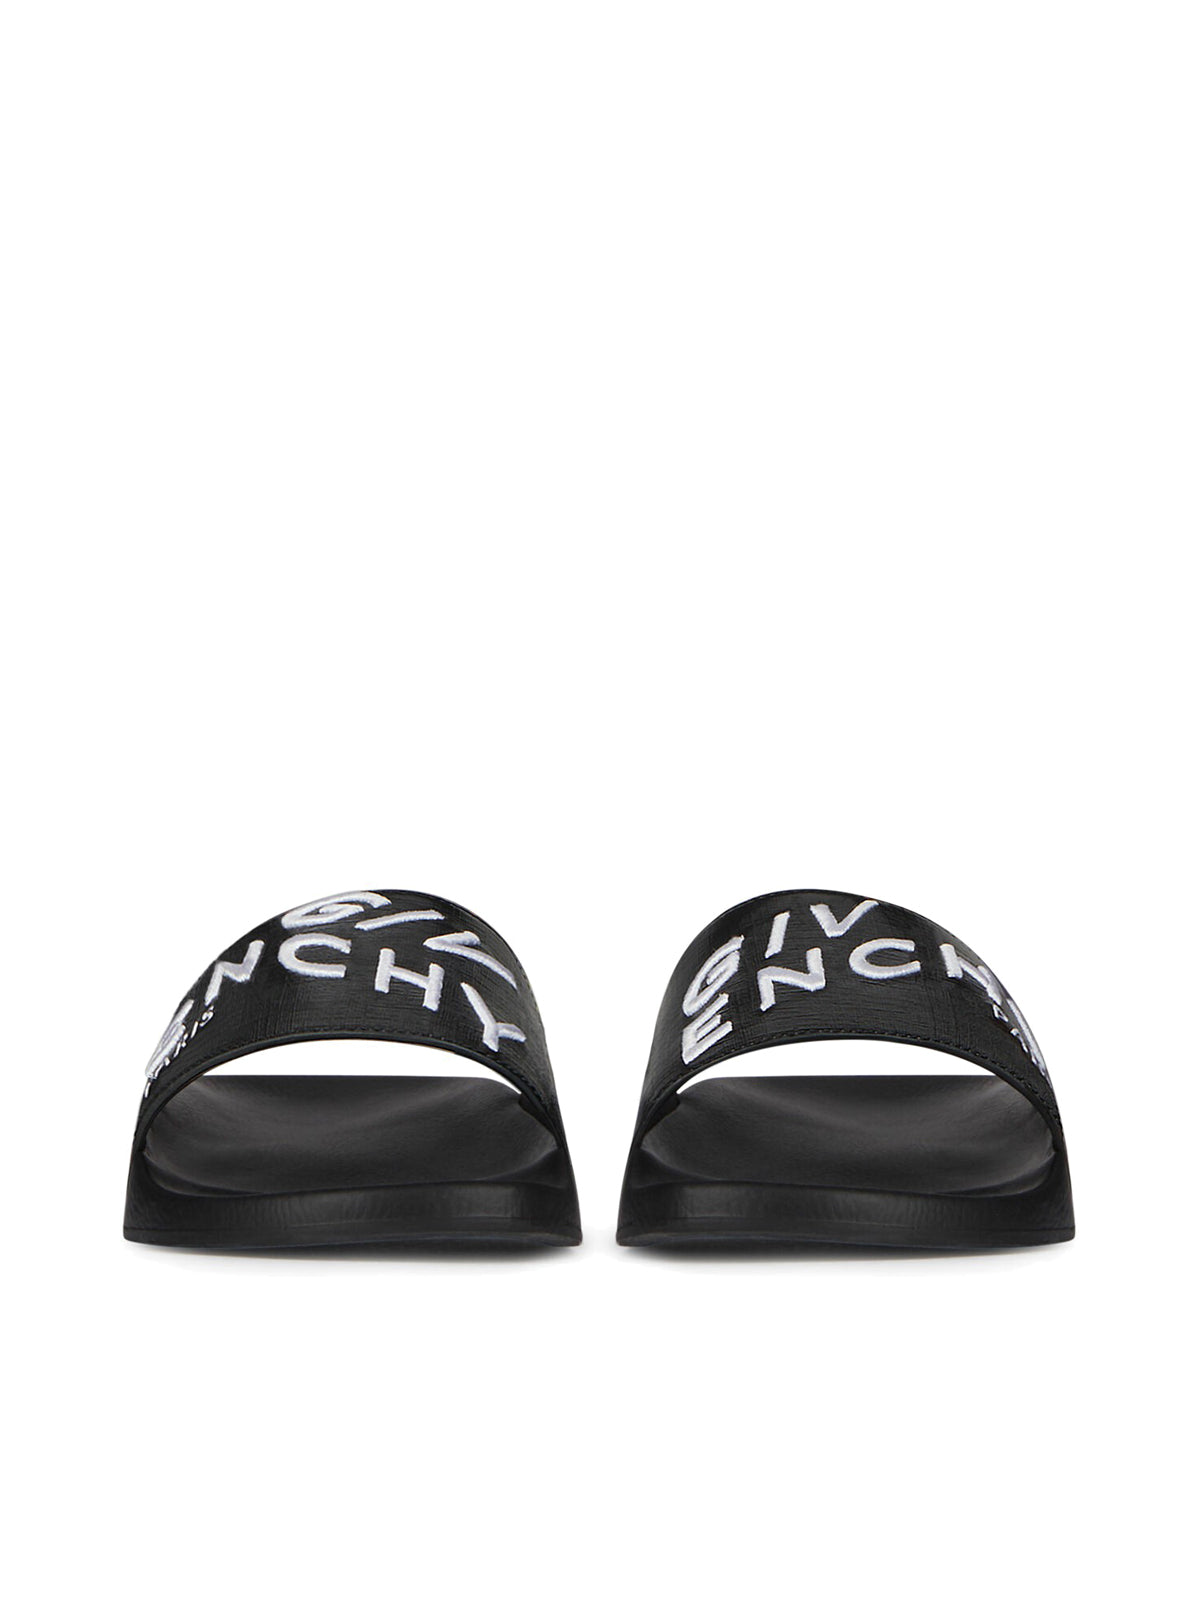 logo print leather slides